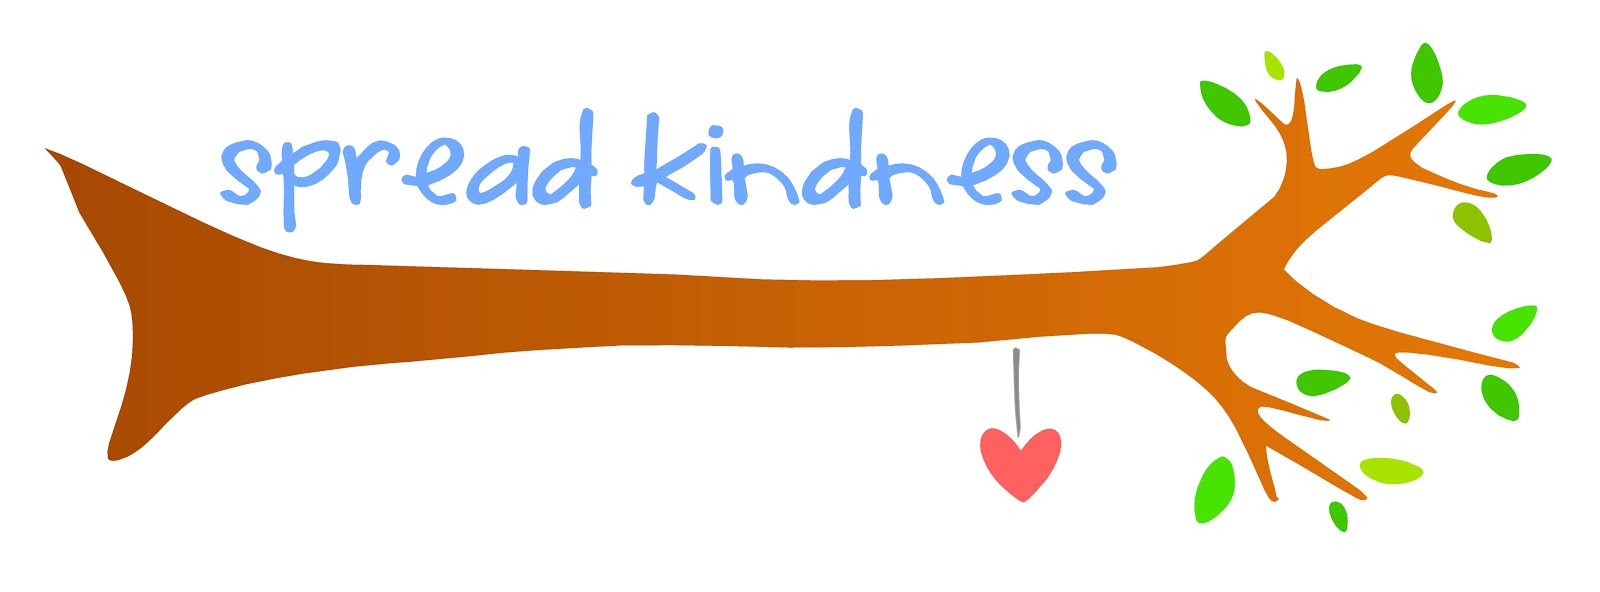 1600x592 Open Door Clipart Kindness